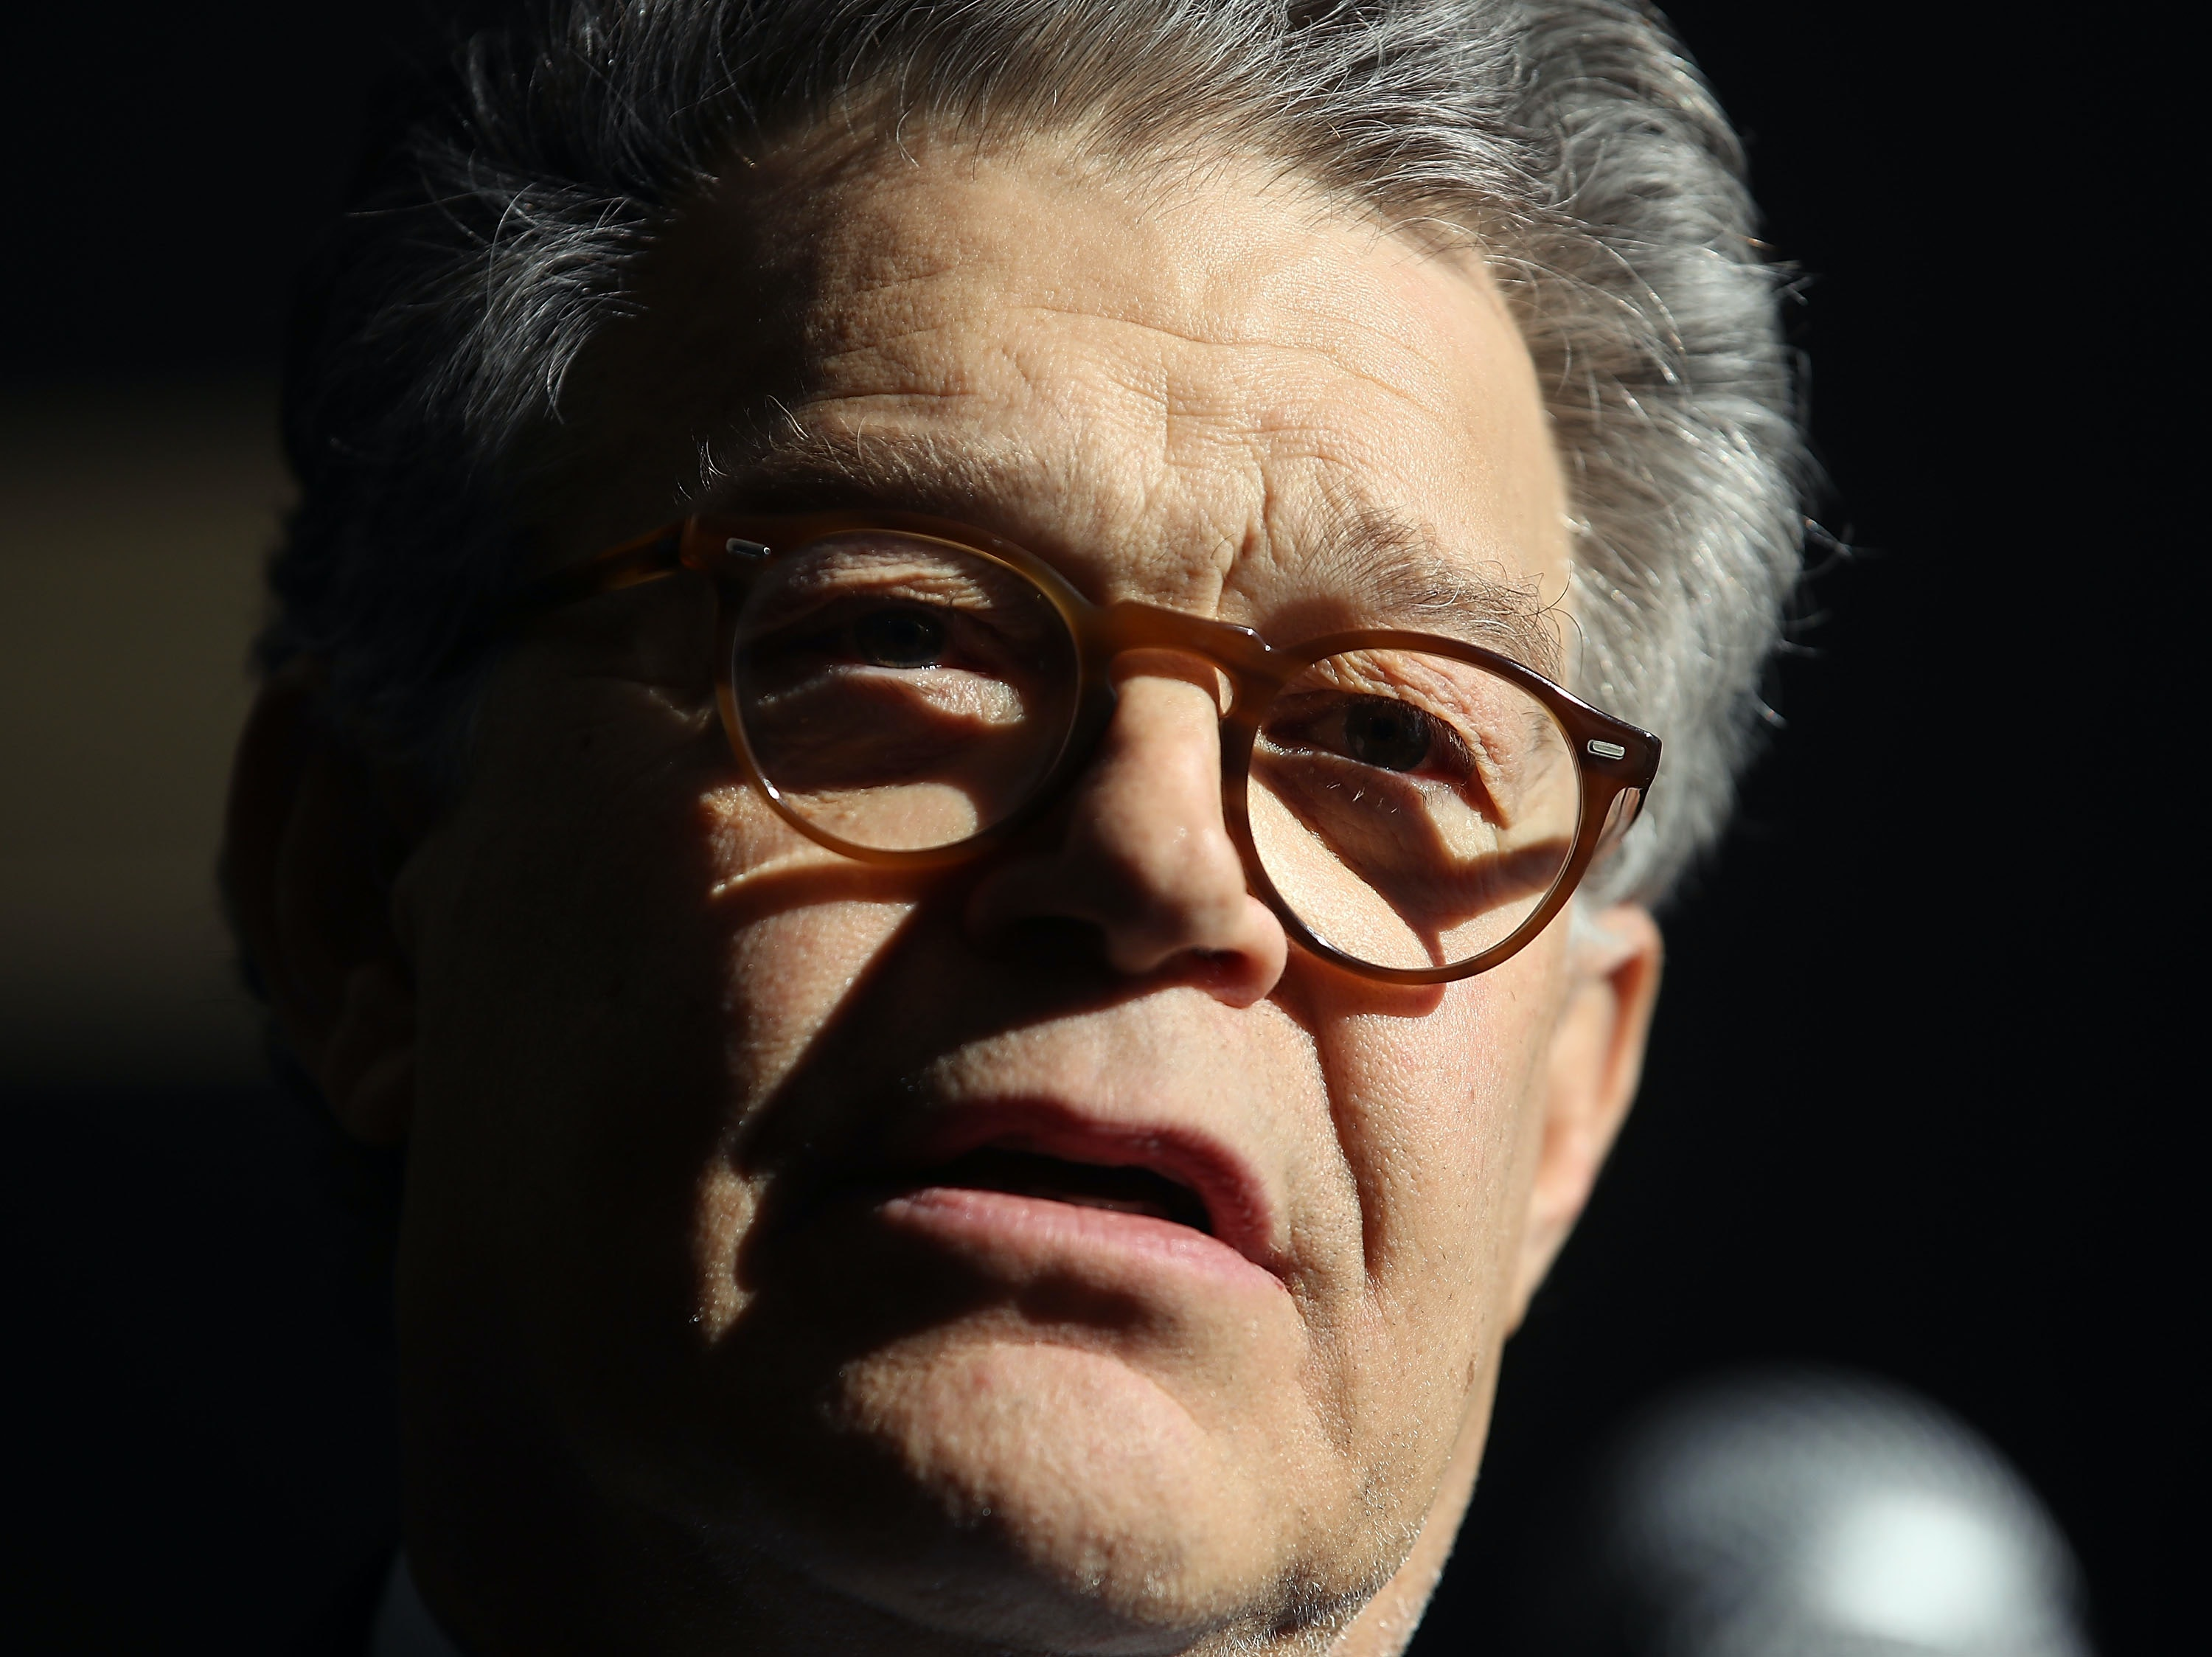 Al Franken Accused of Groping Army Veteran During 2003 USO Tour